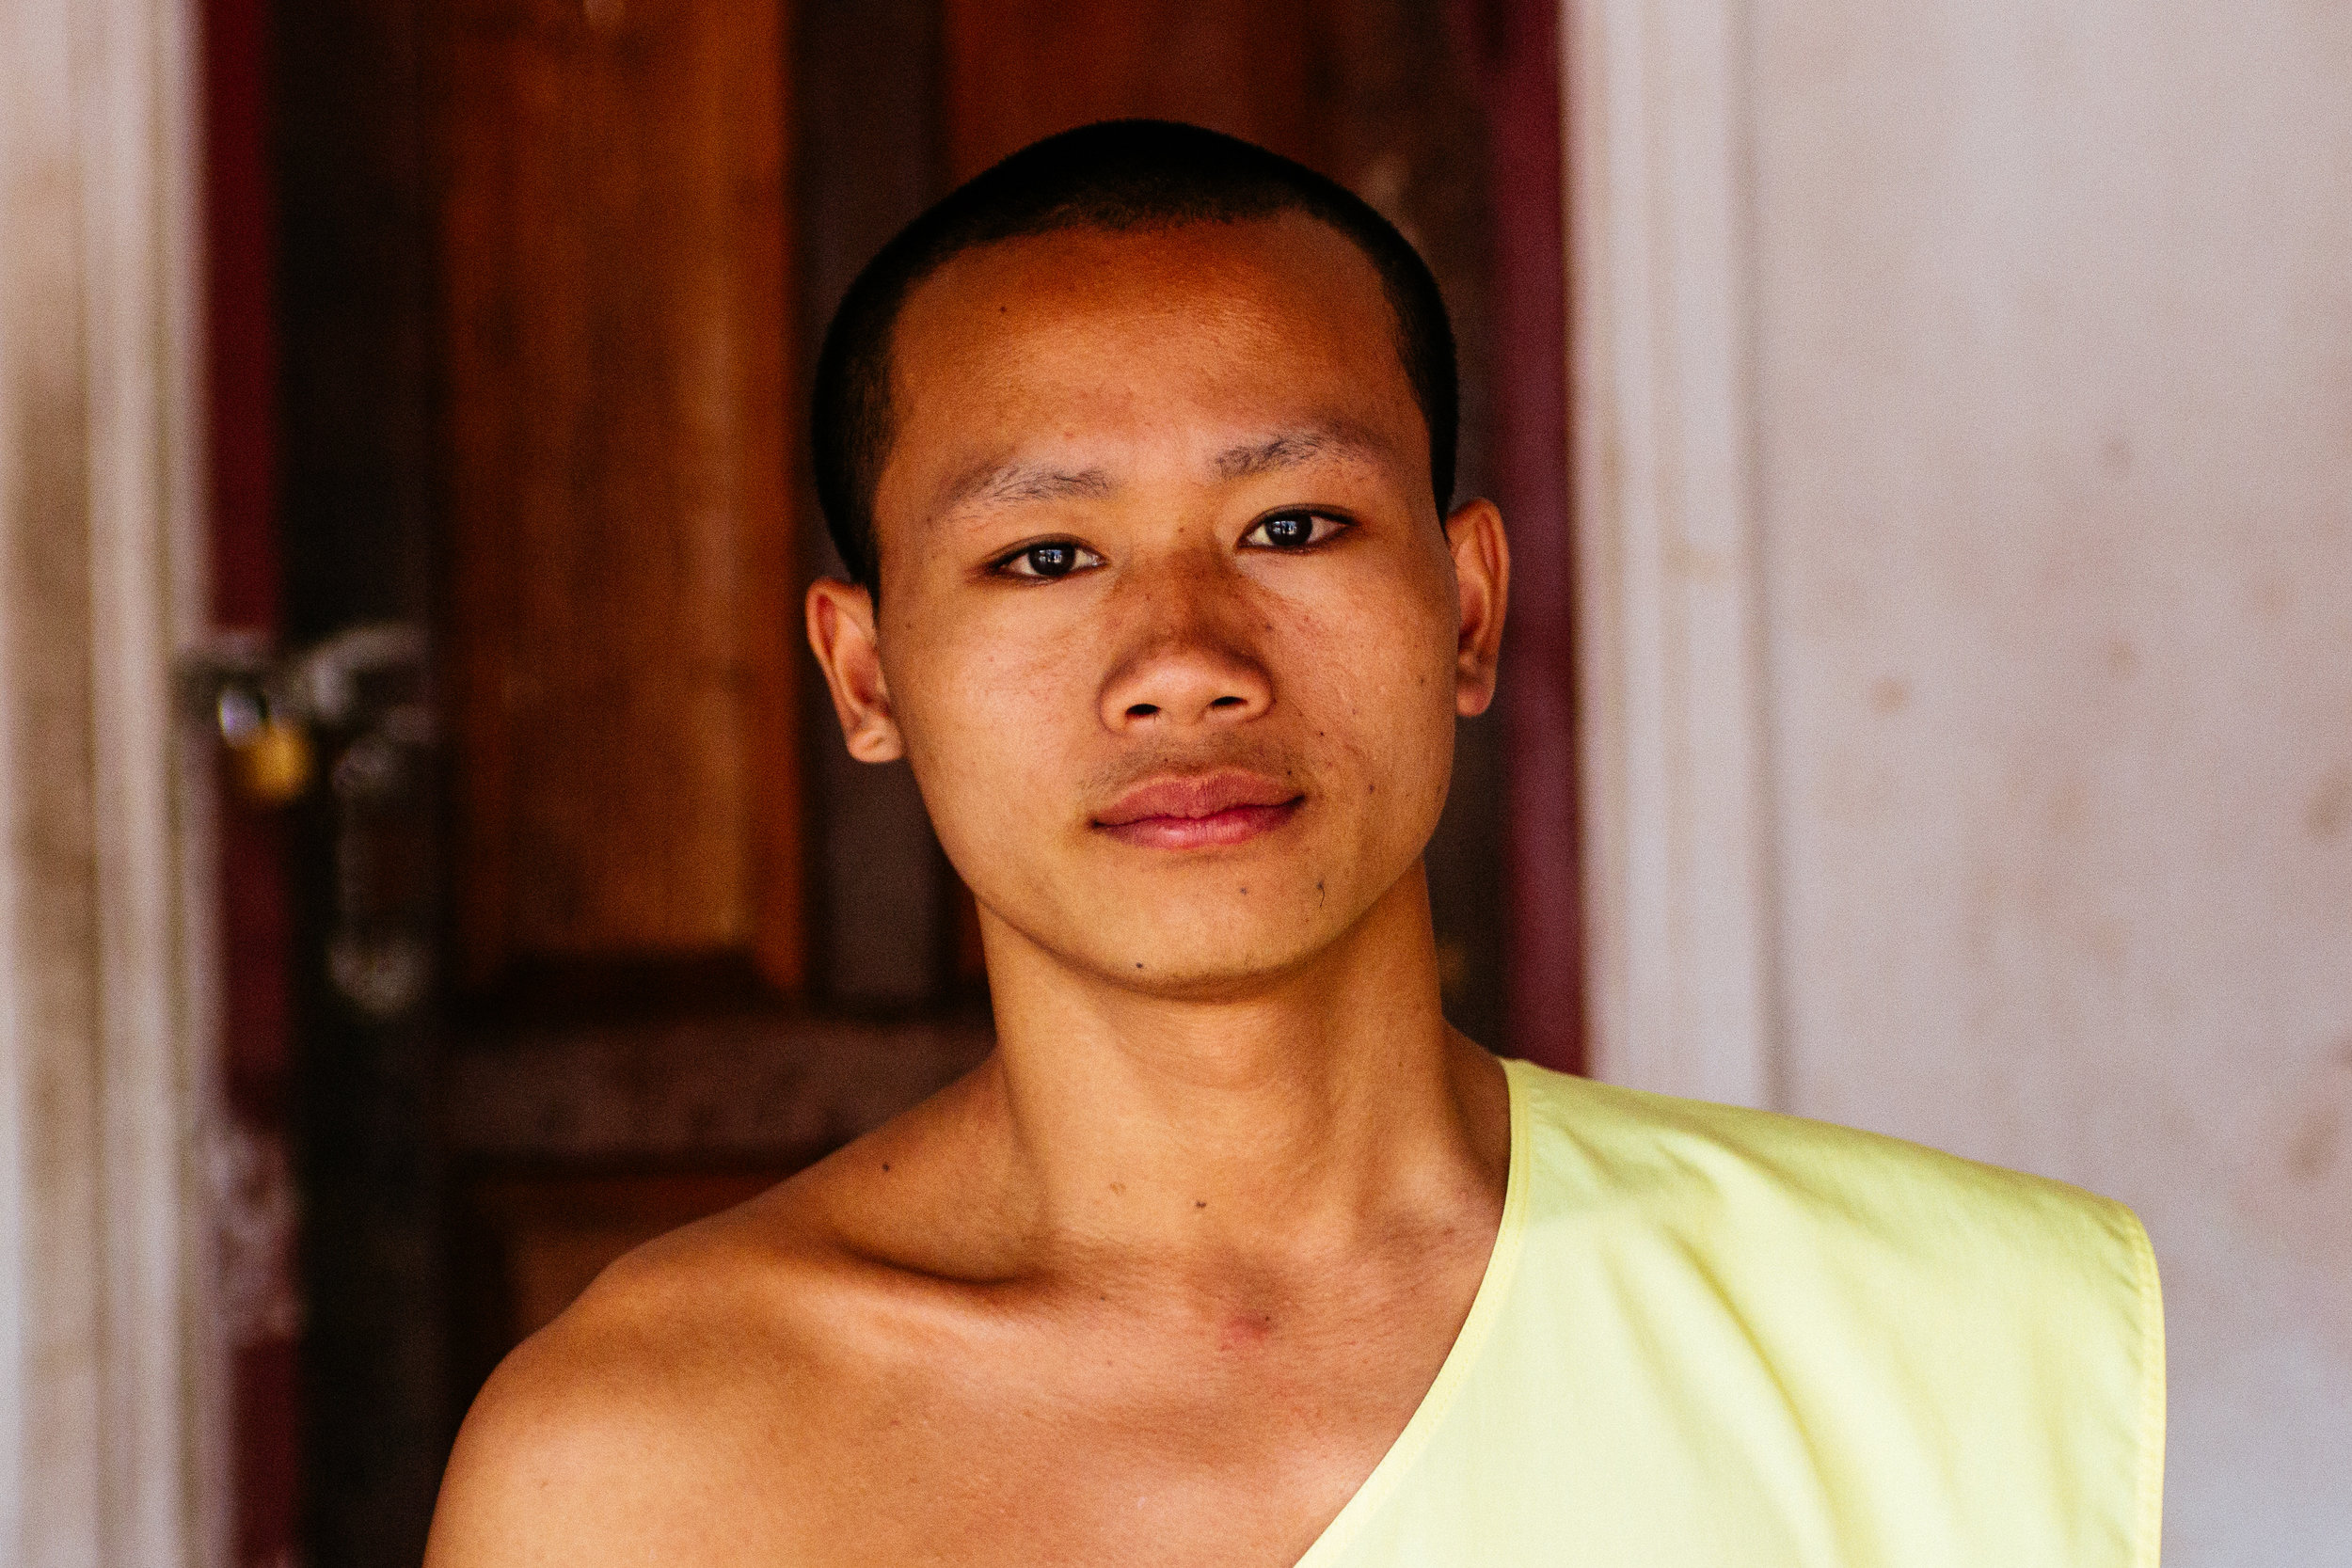 A friendly monk named I met named Koum.